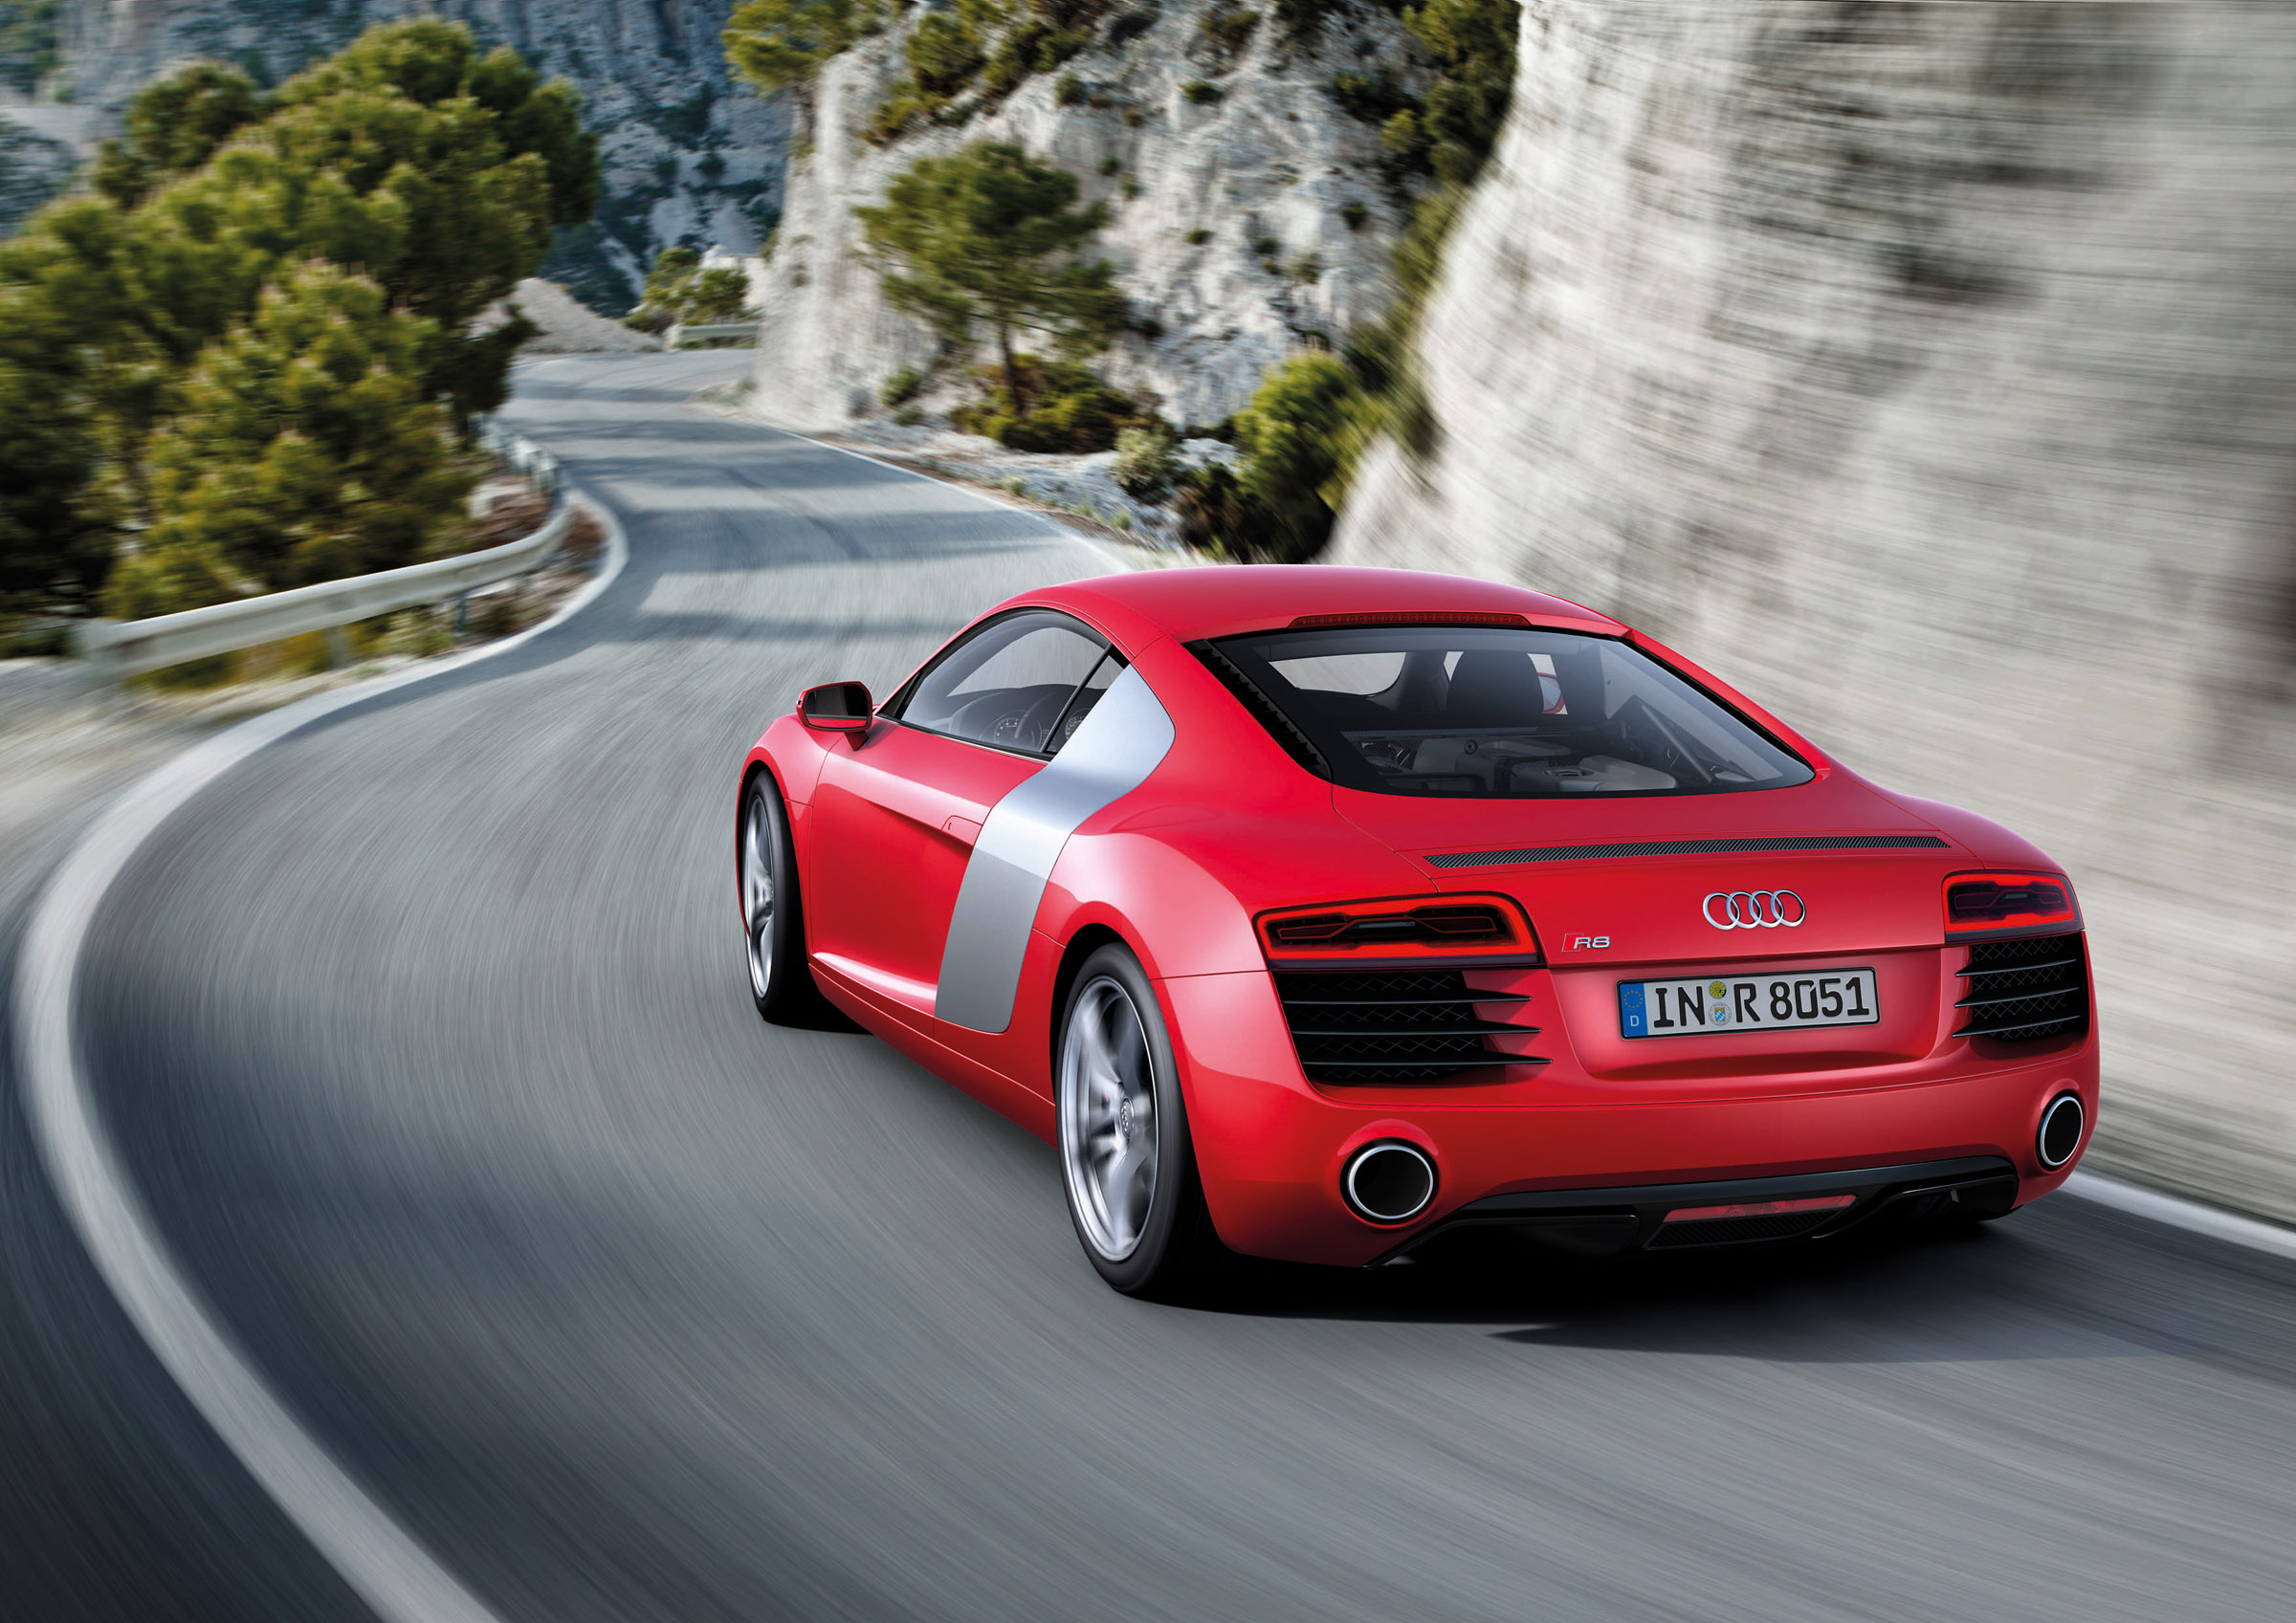 2013 Red Audi R8 Rear View